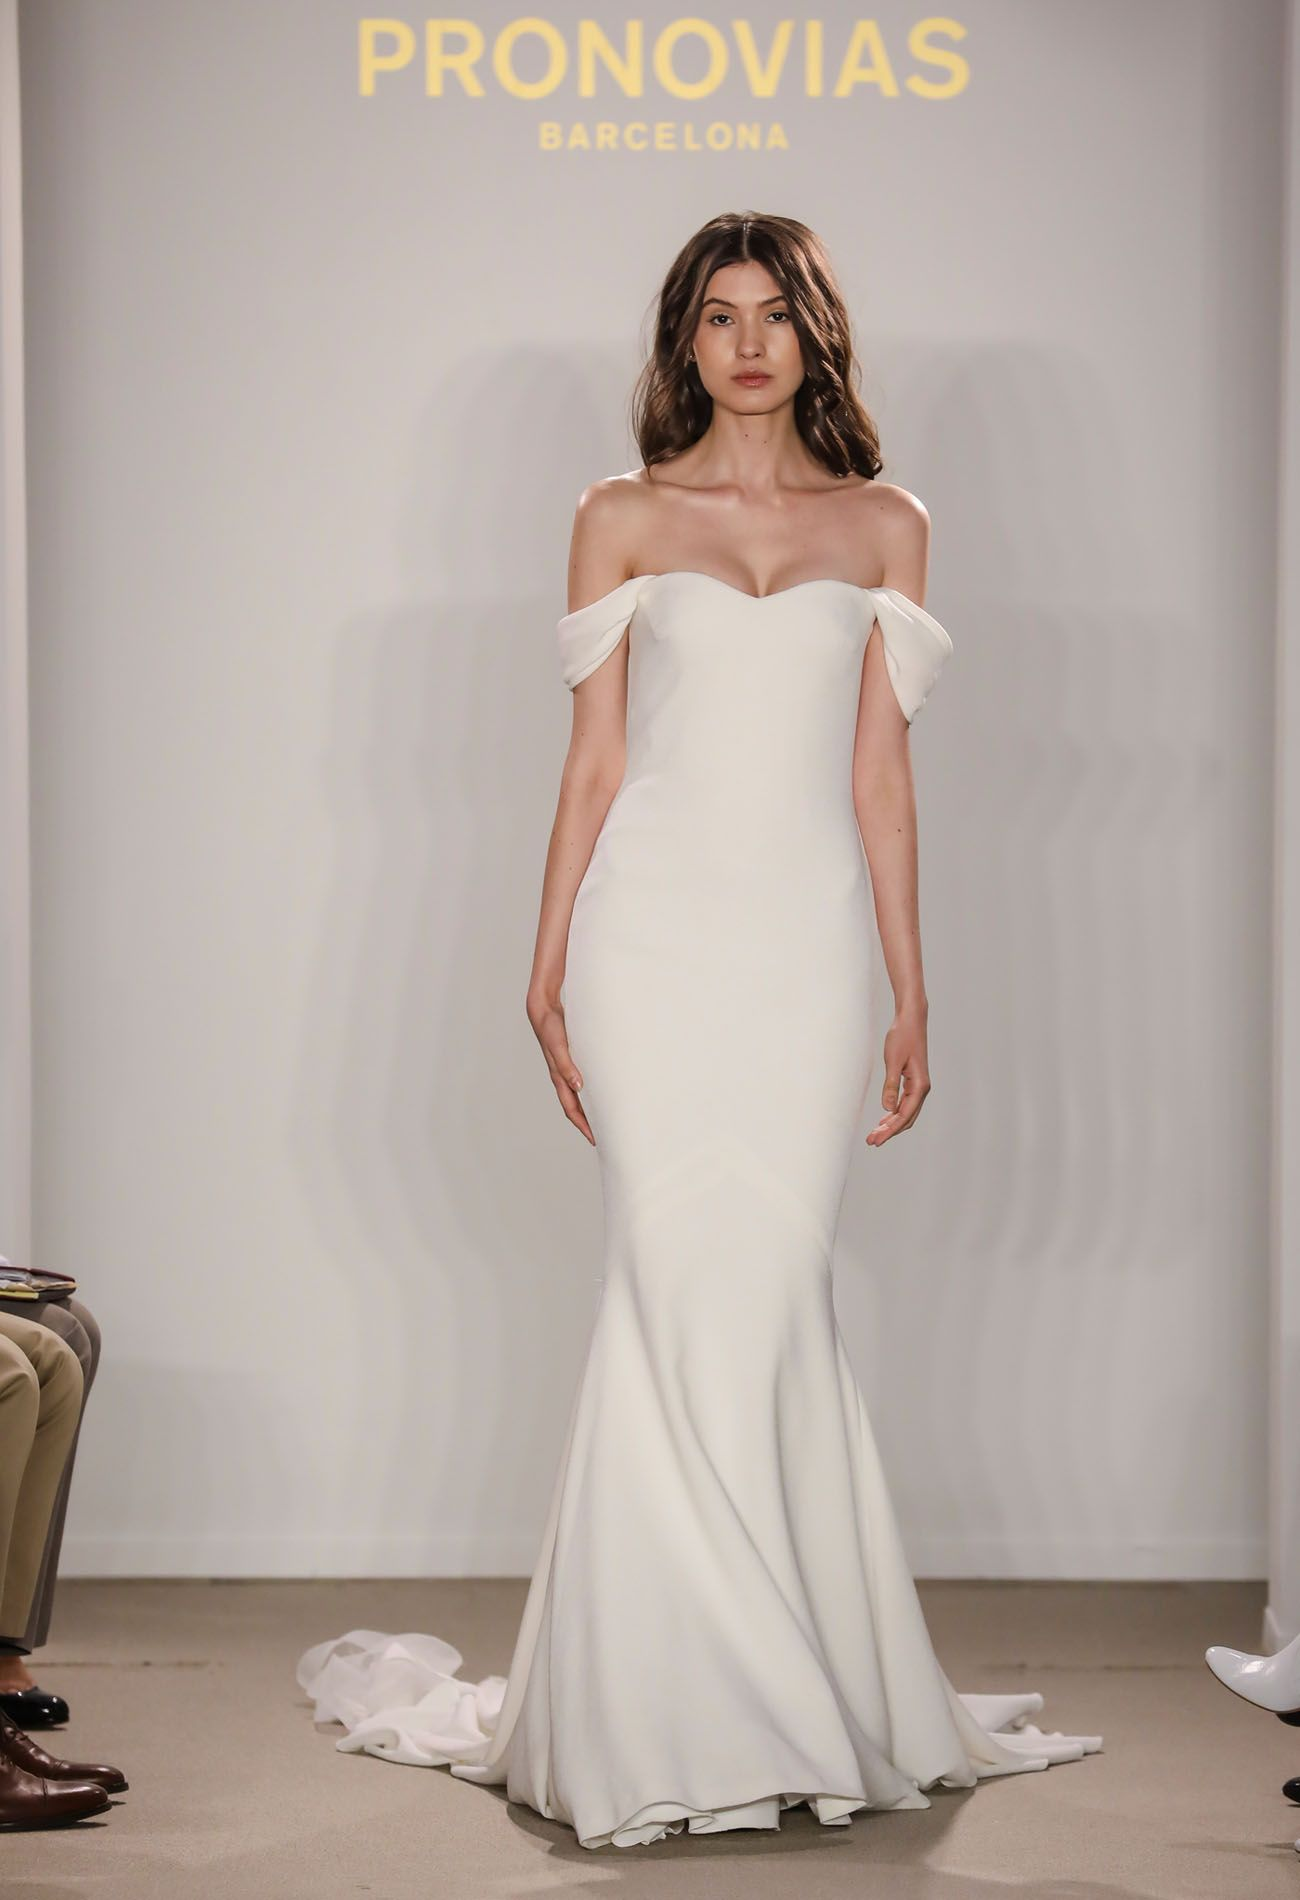 2018 Atelier Pronovias Preview Collection // modern and sophisticated off  the shoulder wedding dress